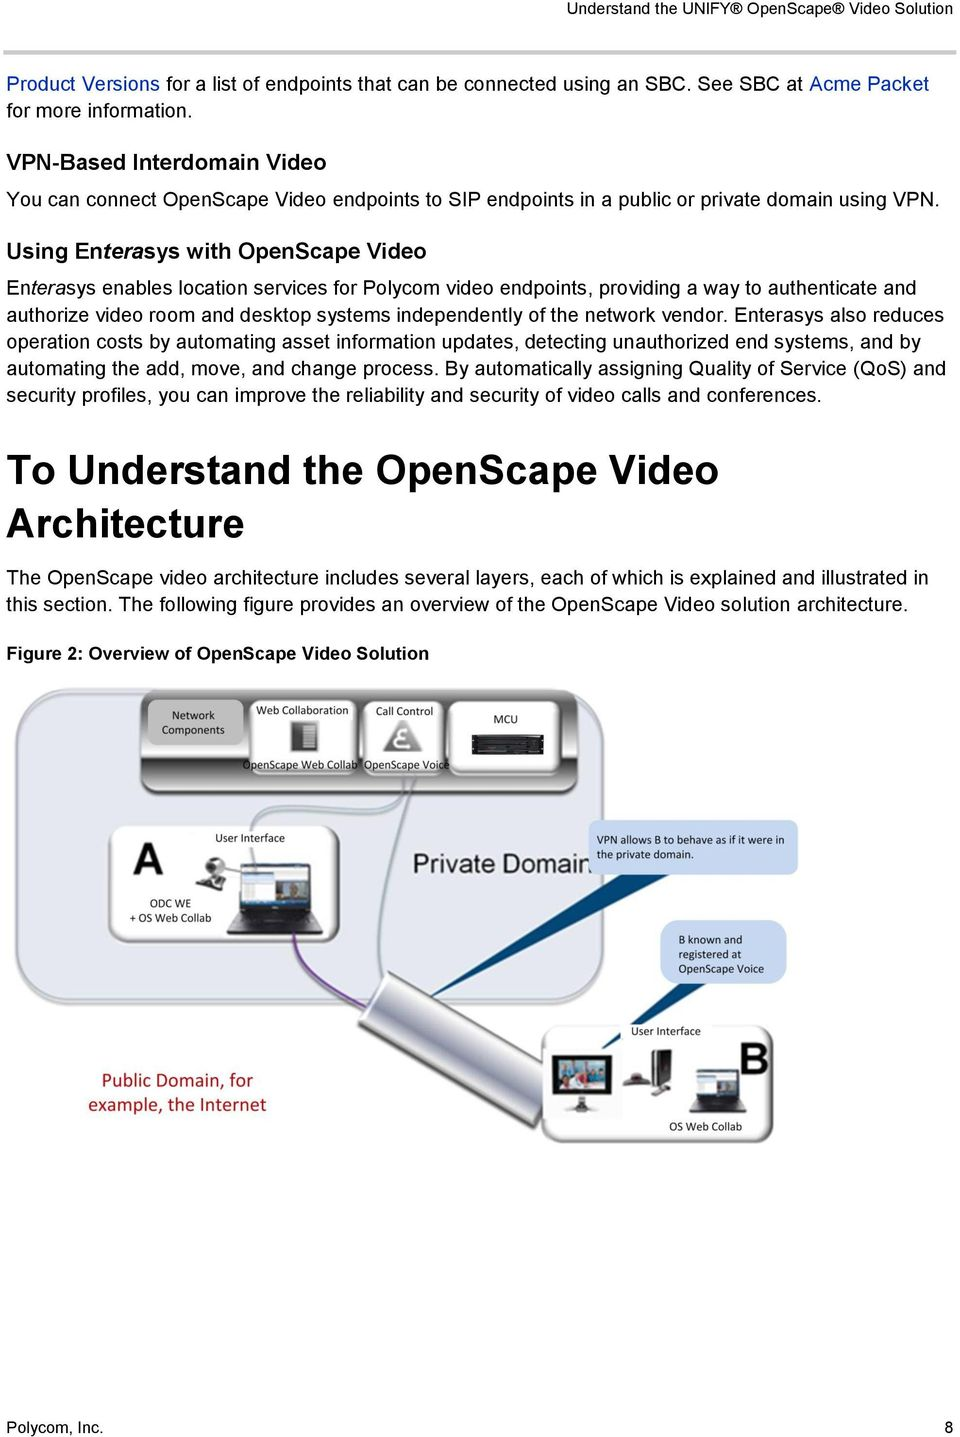 Using Enterasys with OpenScape Video Enterasys enables location services for Polycom video endpoints, providing a way to authenticate and authorize video room and desktop systems independently of the